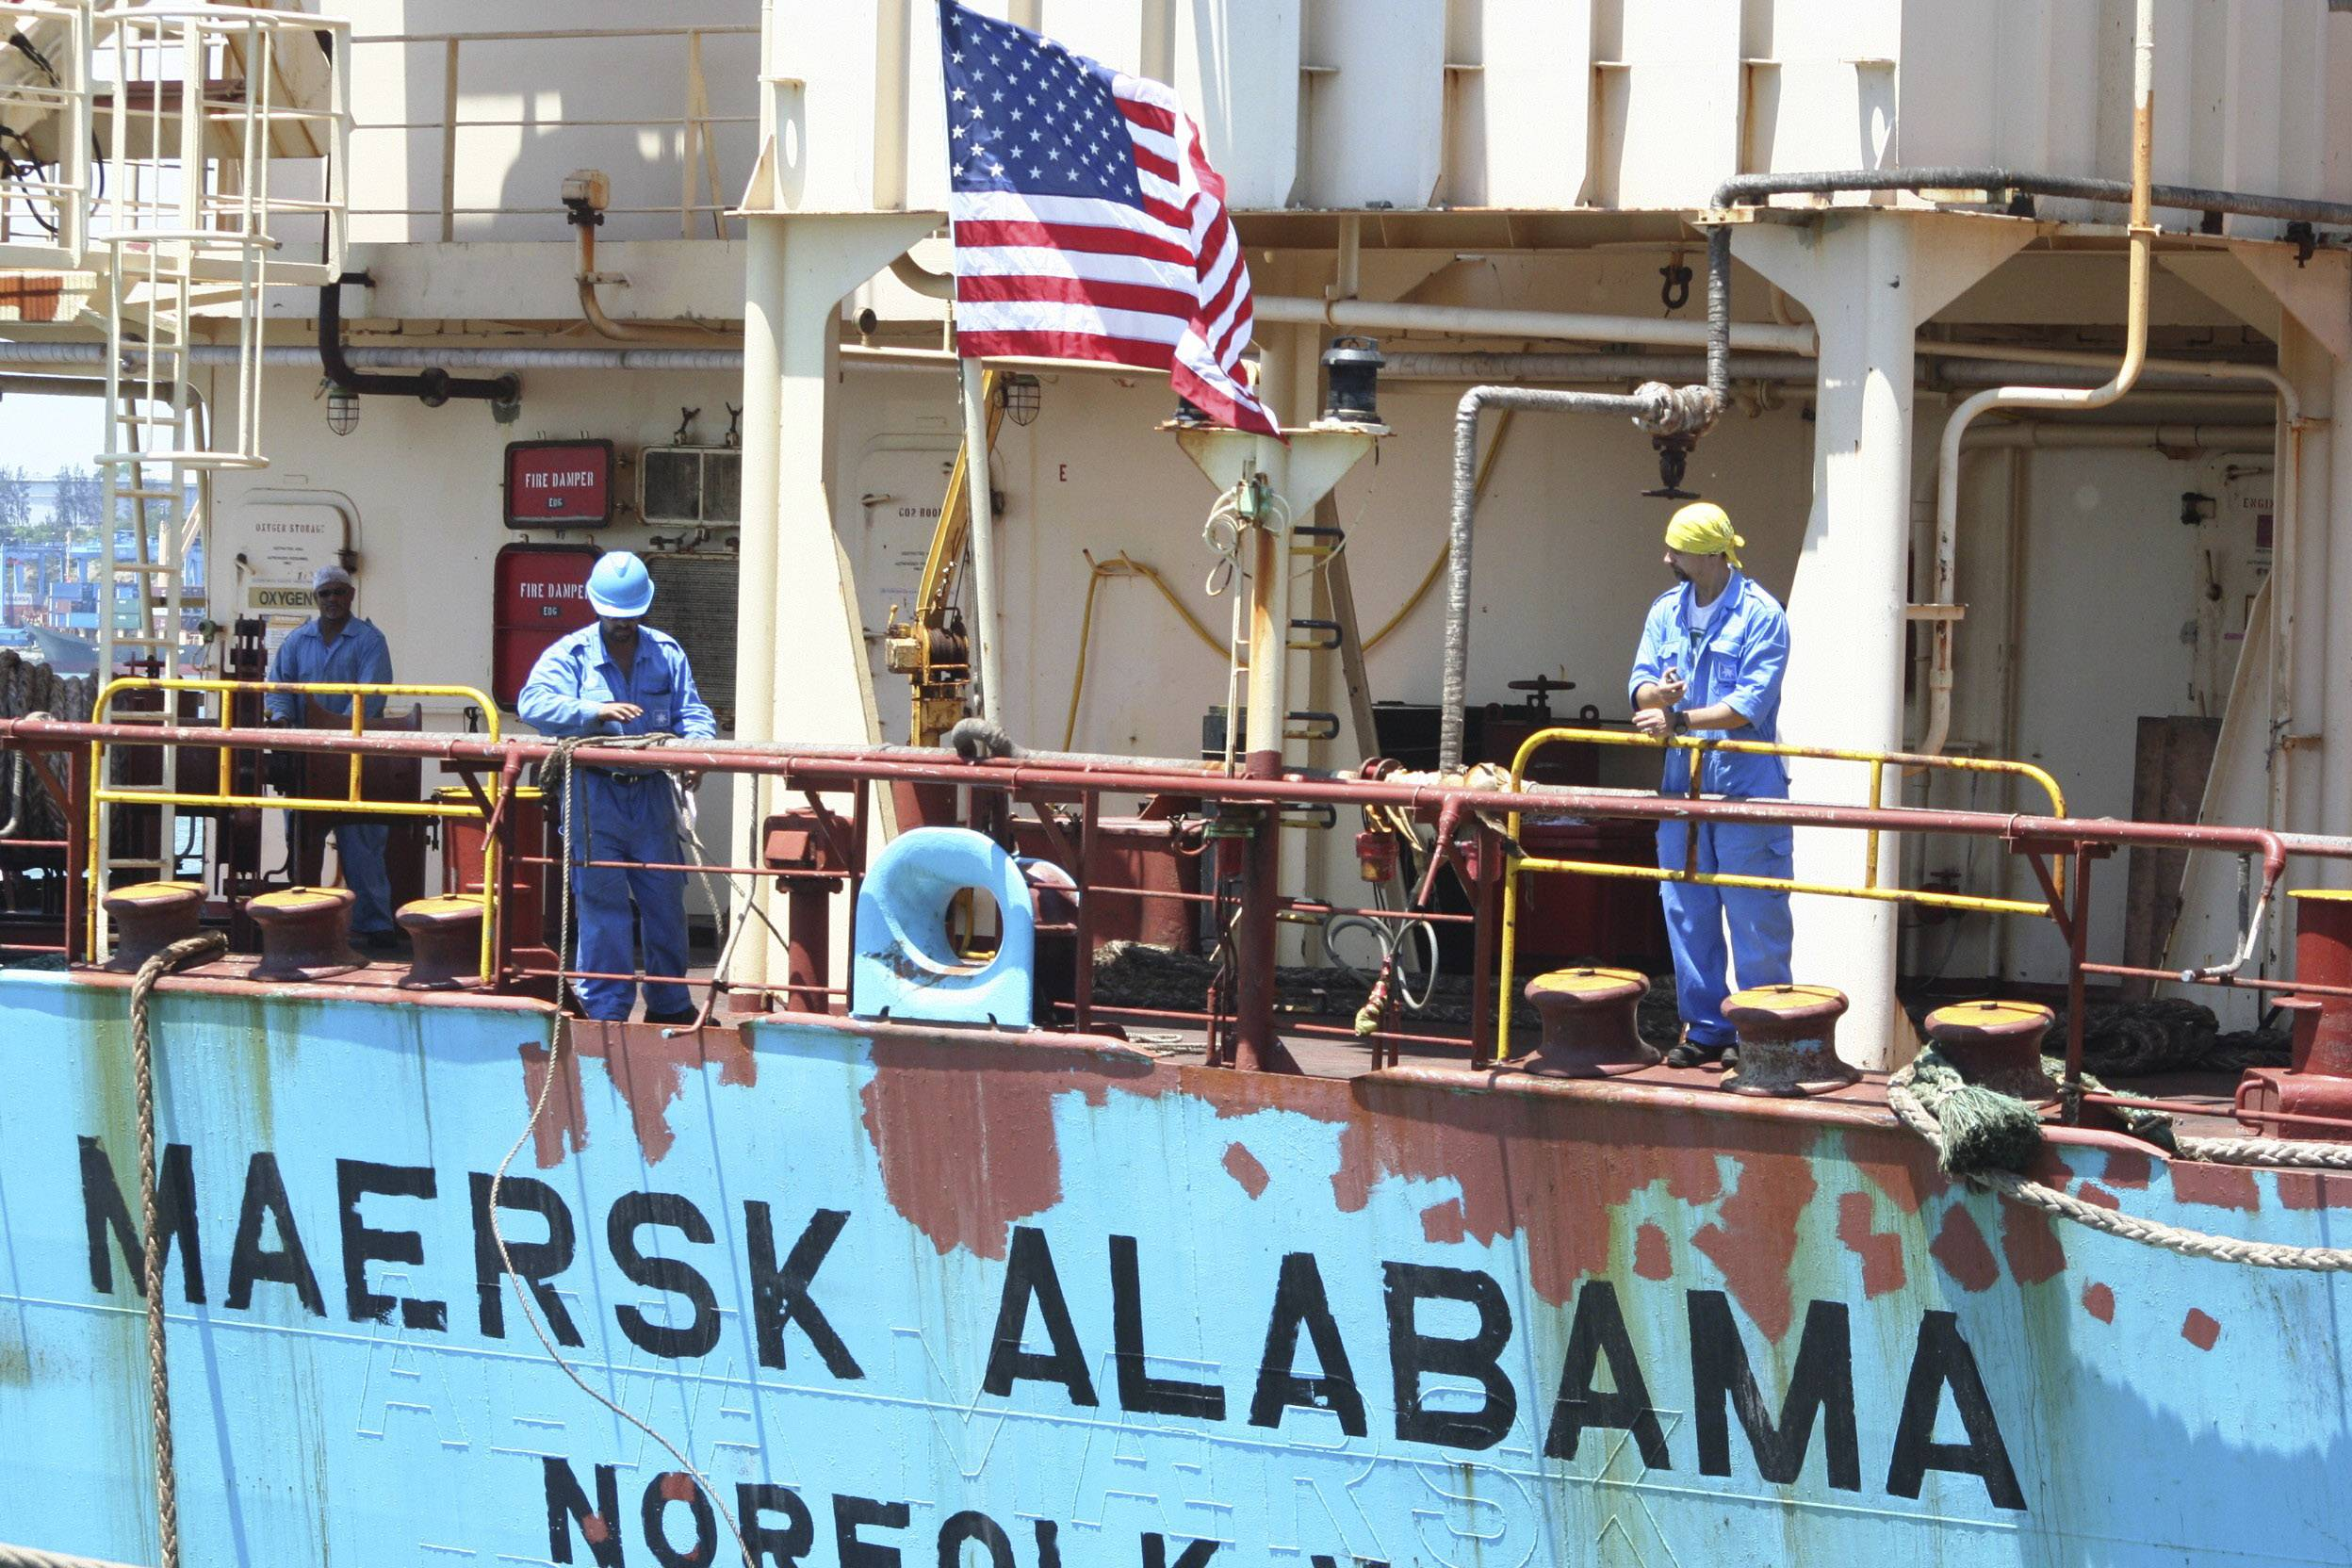 Police in the Indian Ocean island nation of Seychelles said Wednesday, Feb. 19, 2014 that two American security officers were found dead Tuesday in a cabin on the Maersk Alabama, the ship hijacked by pirates in 2009.